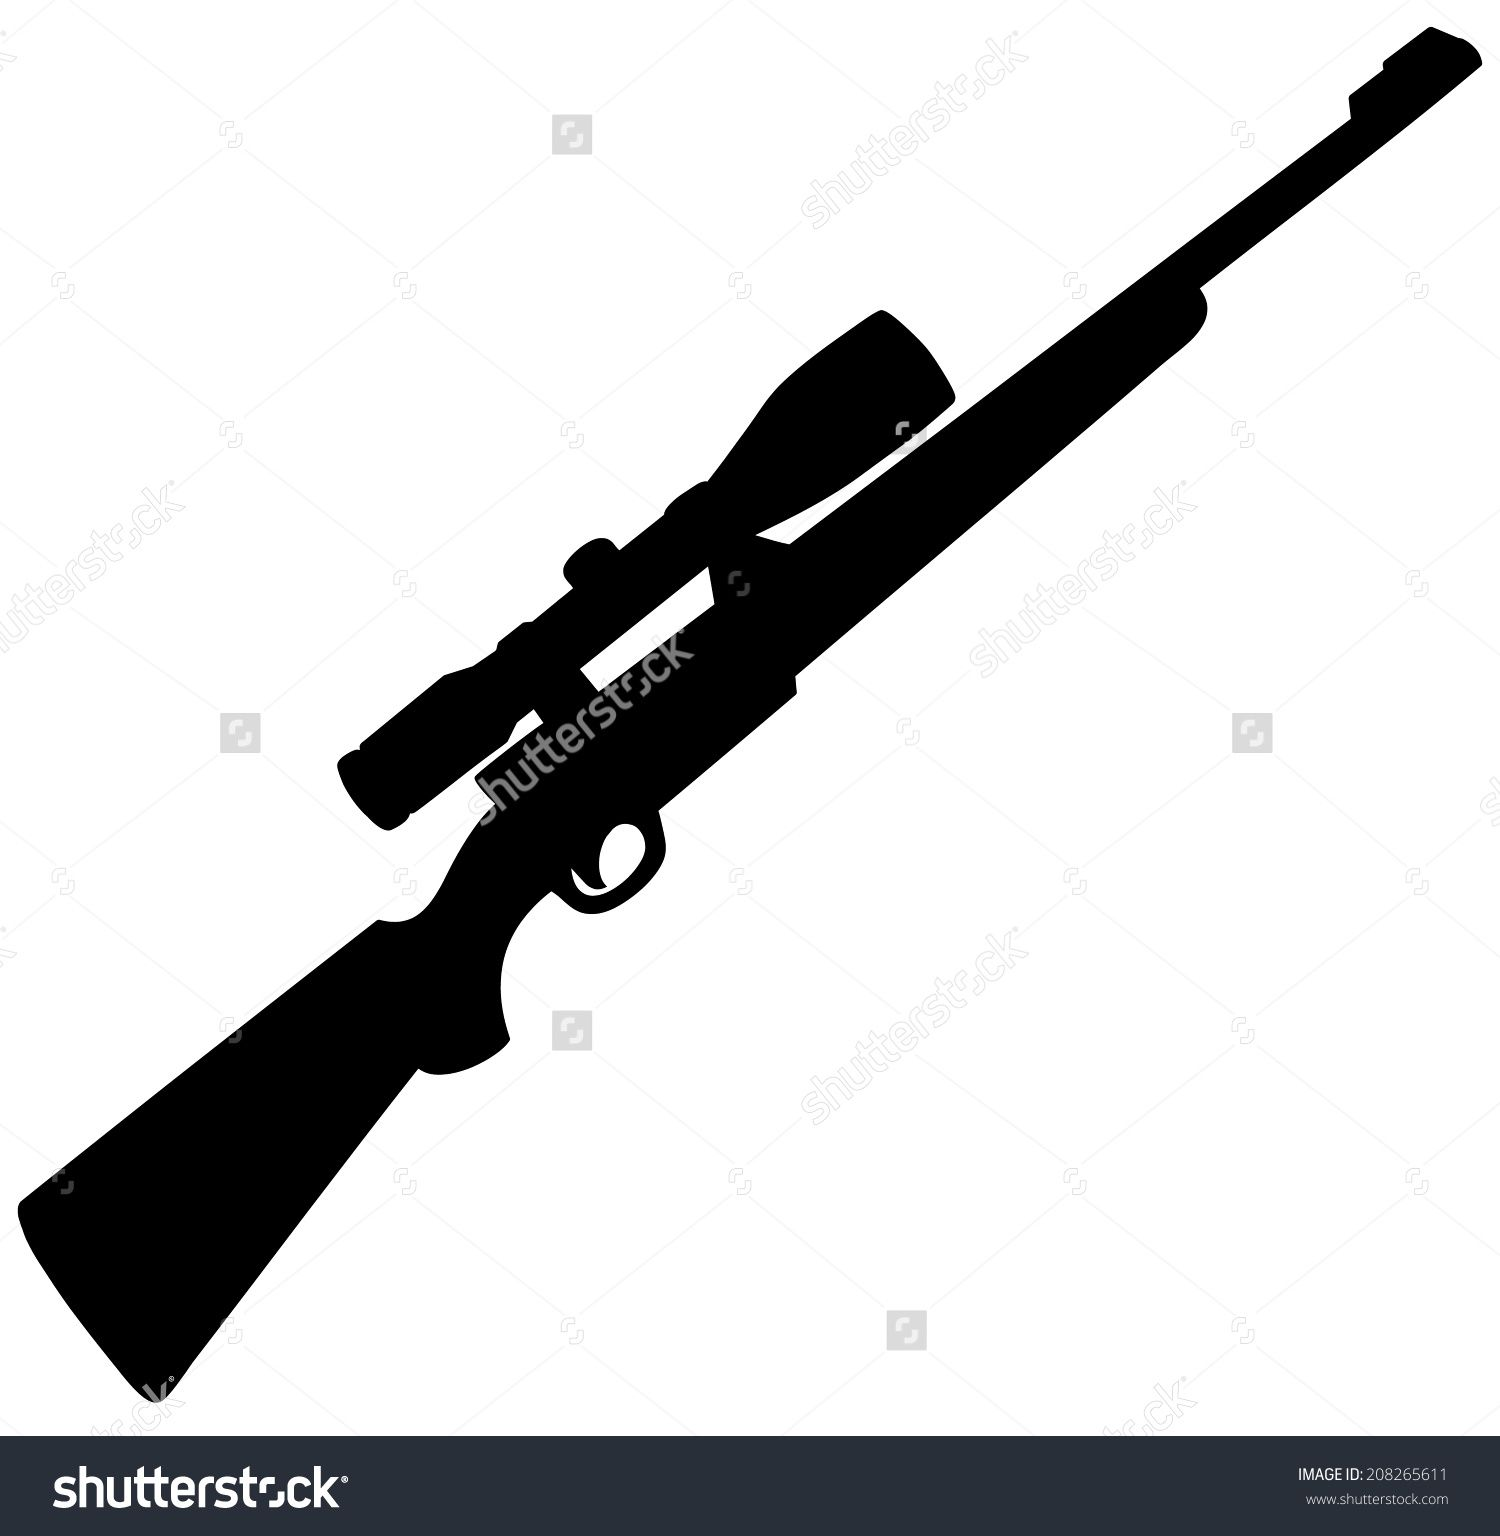 Hunting Rifle Silhouette Stock Vector Illustration 208265611.